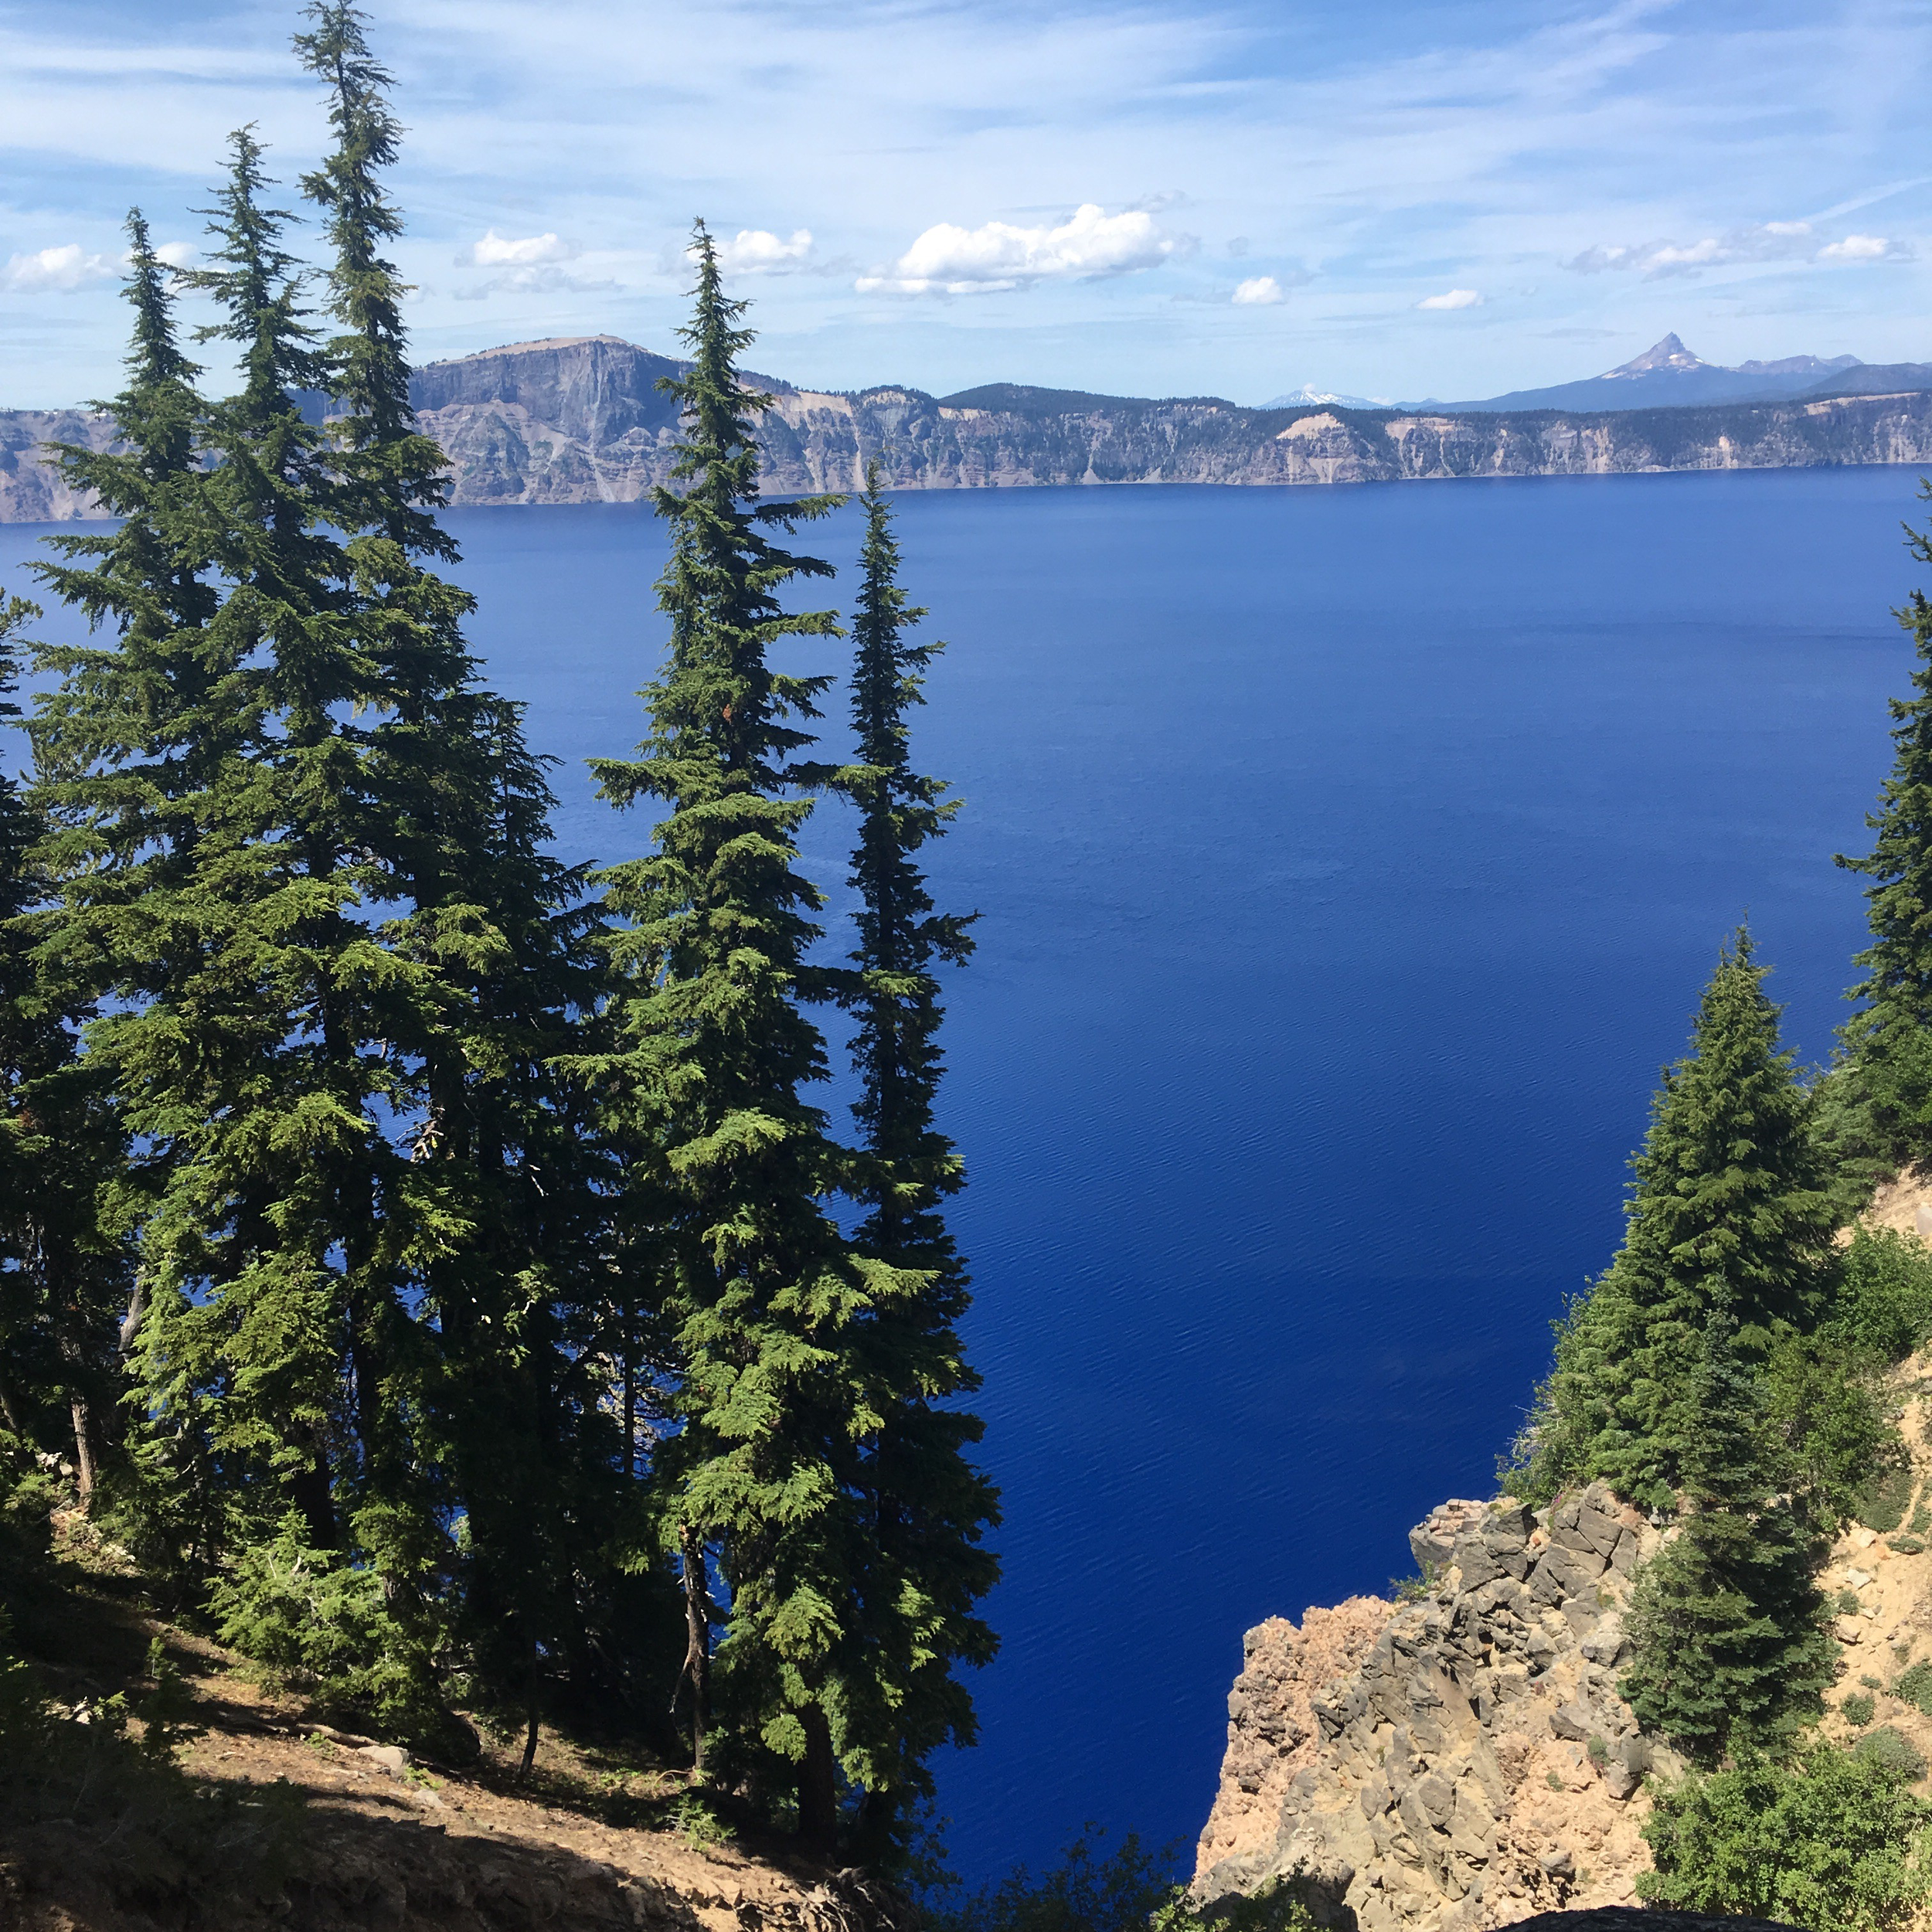 Completely un-edited photo of Crater Lake.